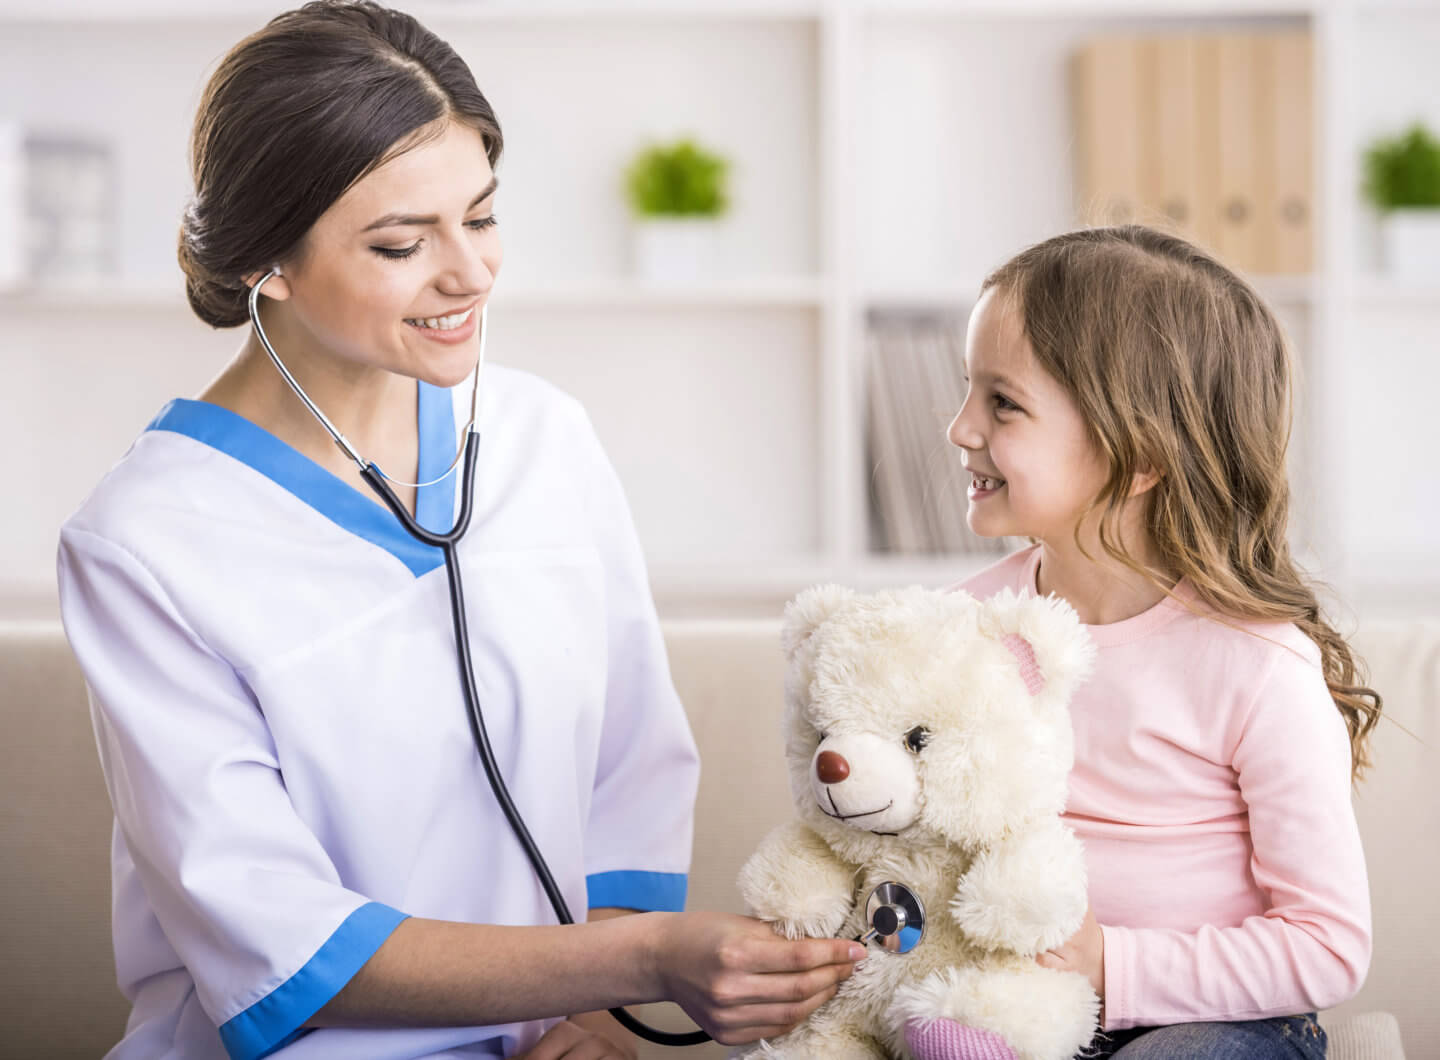 Home healthcare worker uses stethoscope on child's teddy bear.